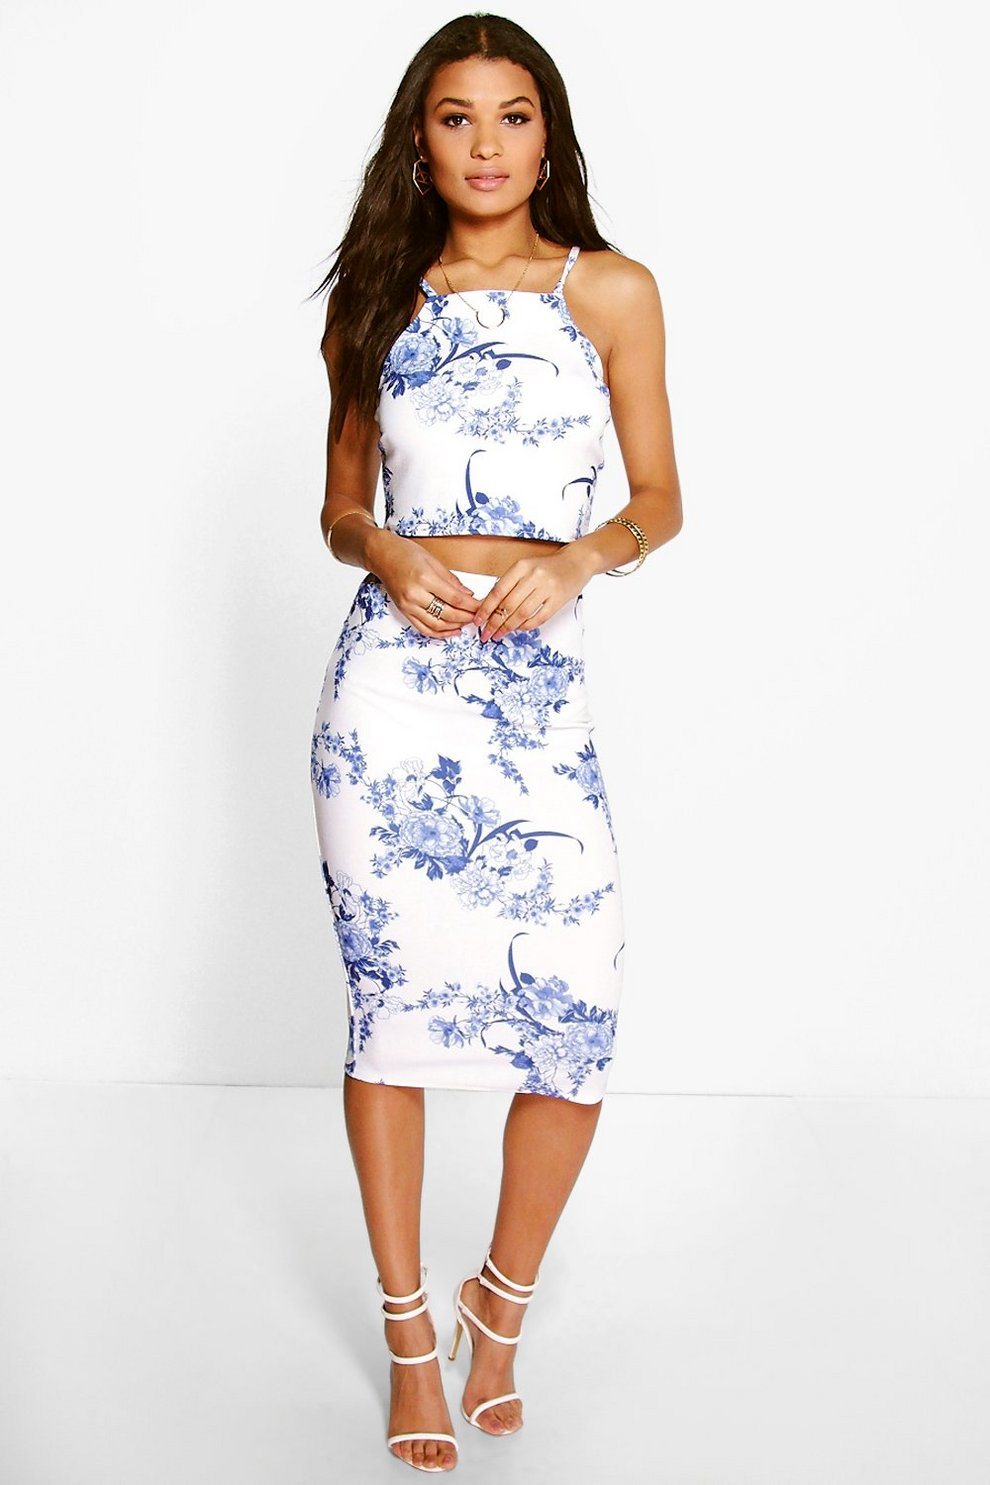 Printed Midi Skirt Co Outlet For Cheap Sale Shop For Buy Cheap Free Shipping p8ygTbUj